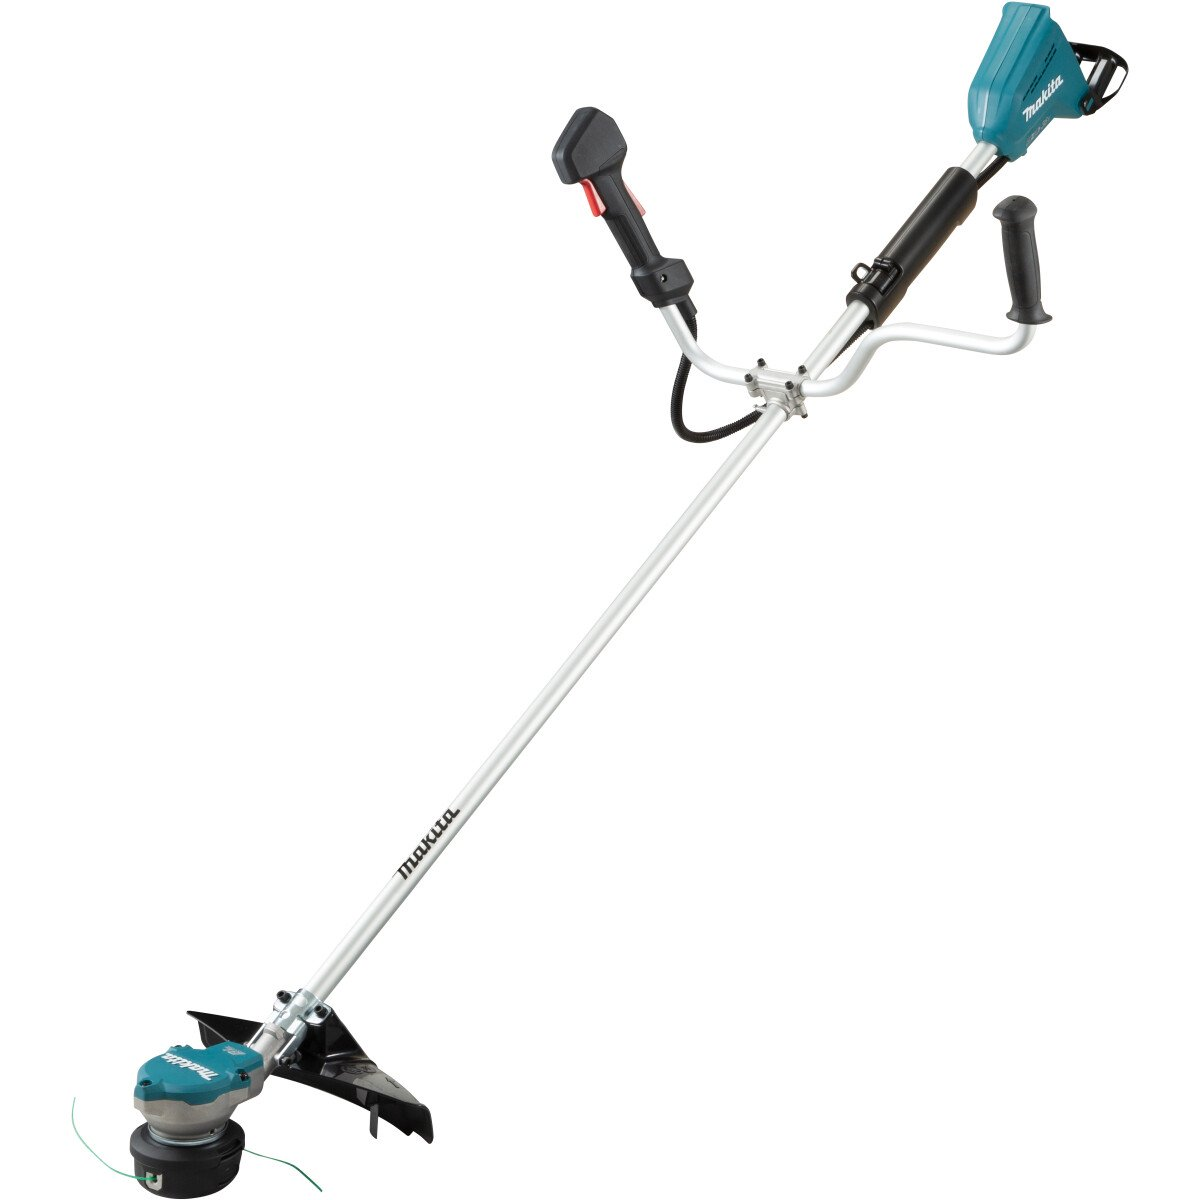 Makita DUR368APG2 Twin 18V Brushless 35cm Brush Cutter with 2 x 6.0Ah Batteries